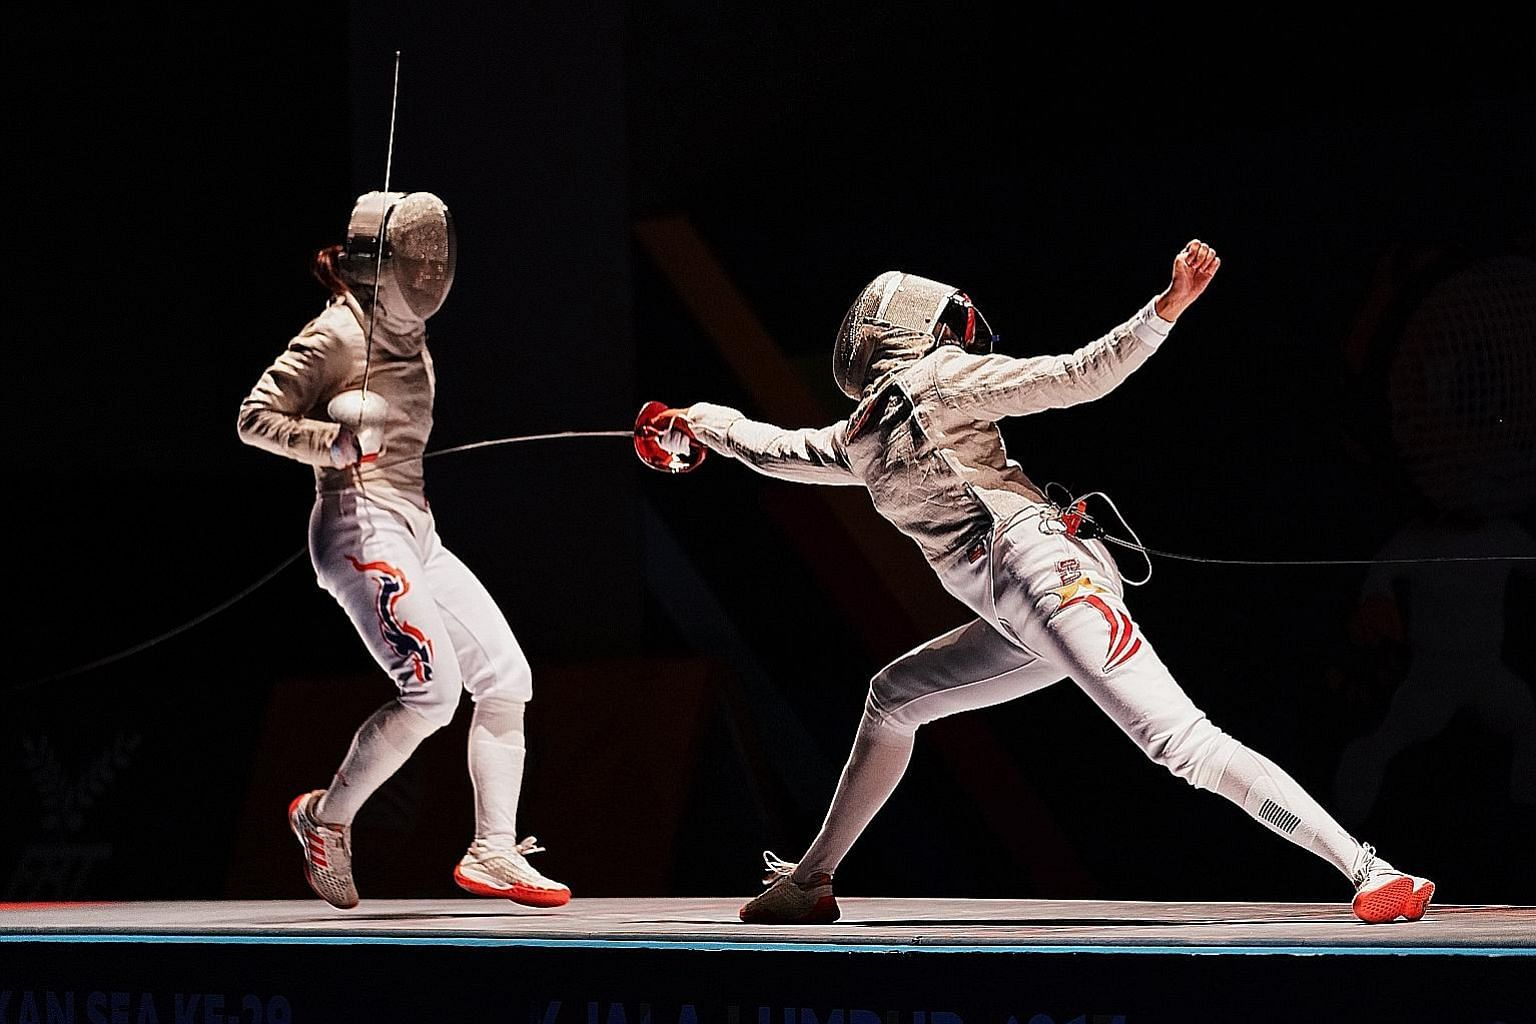 Lau Ywen attacking Thailand's Pornsawan Ngernrungruangroj in the individual sabre final. The reigning Sportsgirl of the Year won 15-12 to clinch her first SEA Games gold medal.